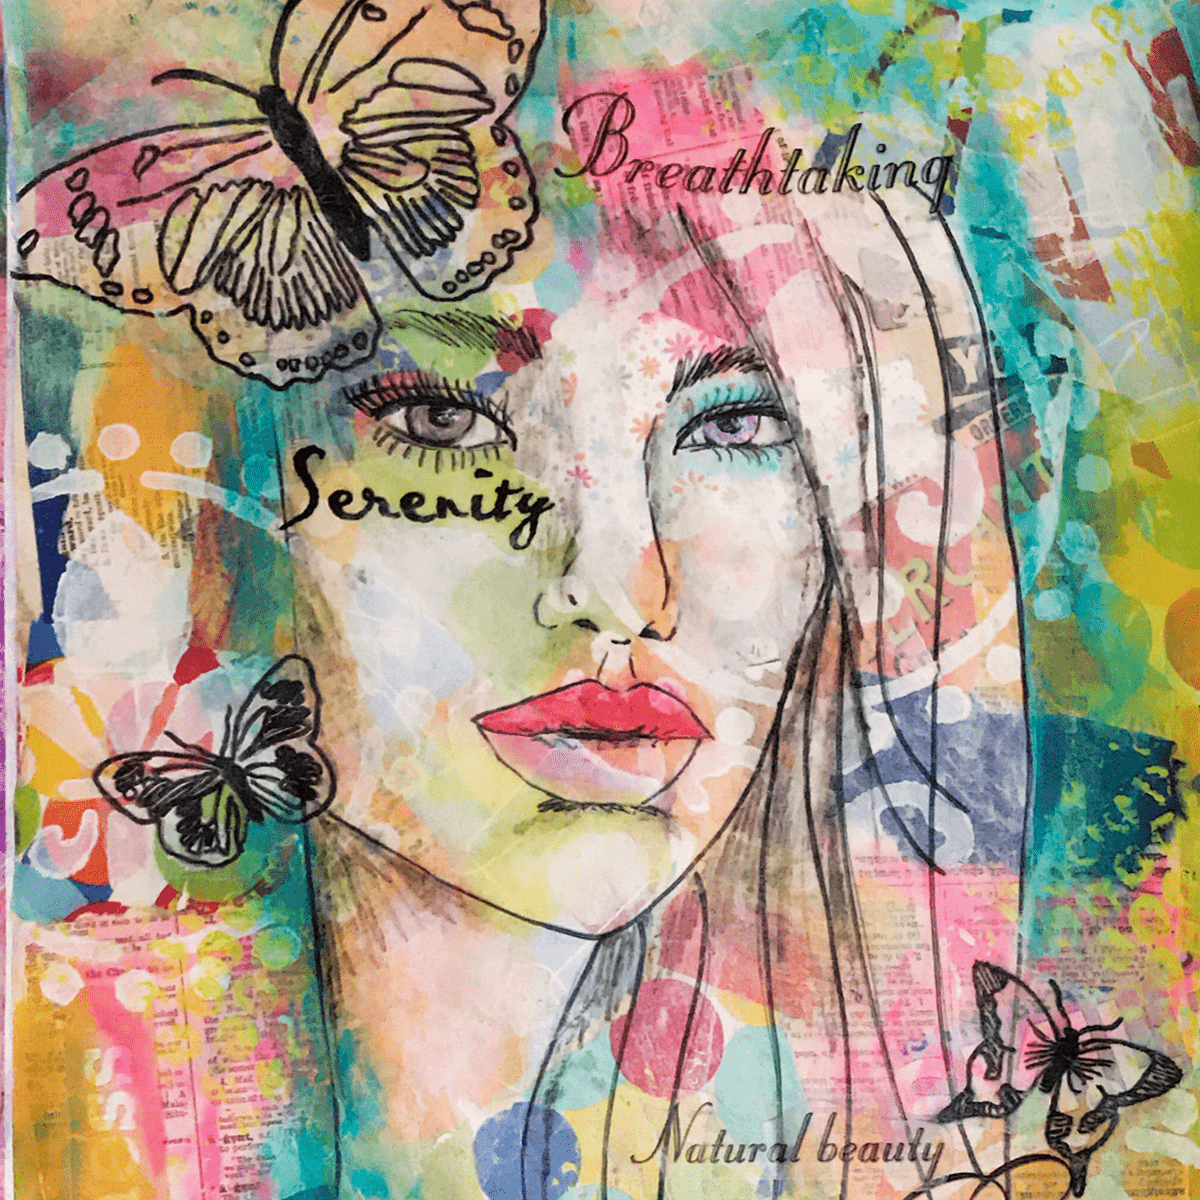 image of colorful mixed media art with a beautiful girl and butterflies